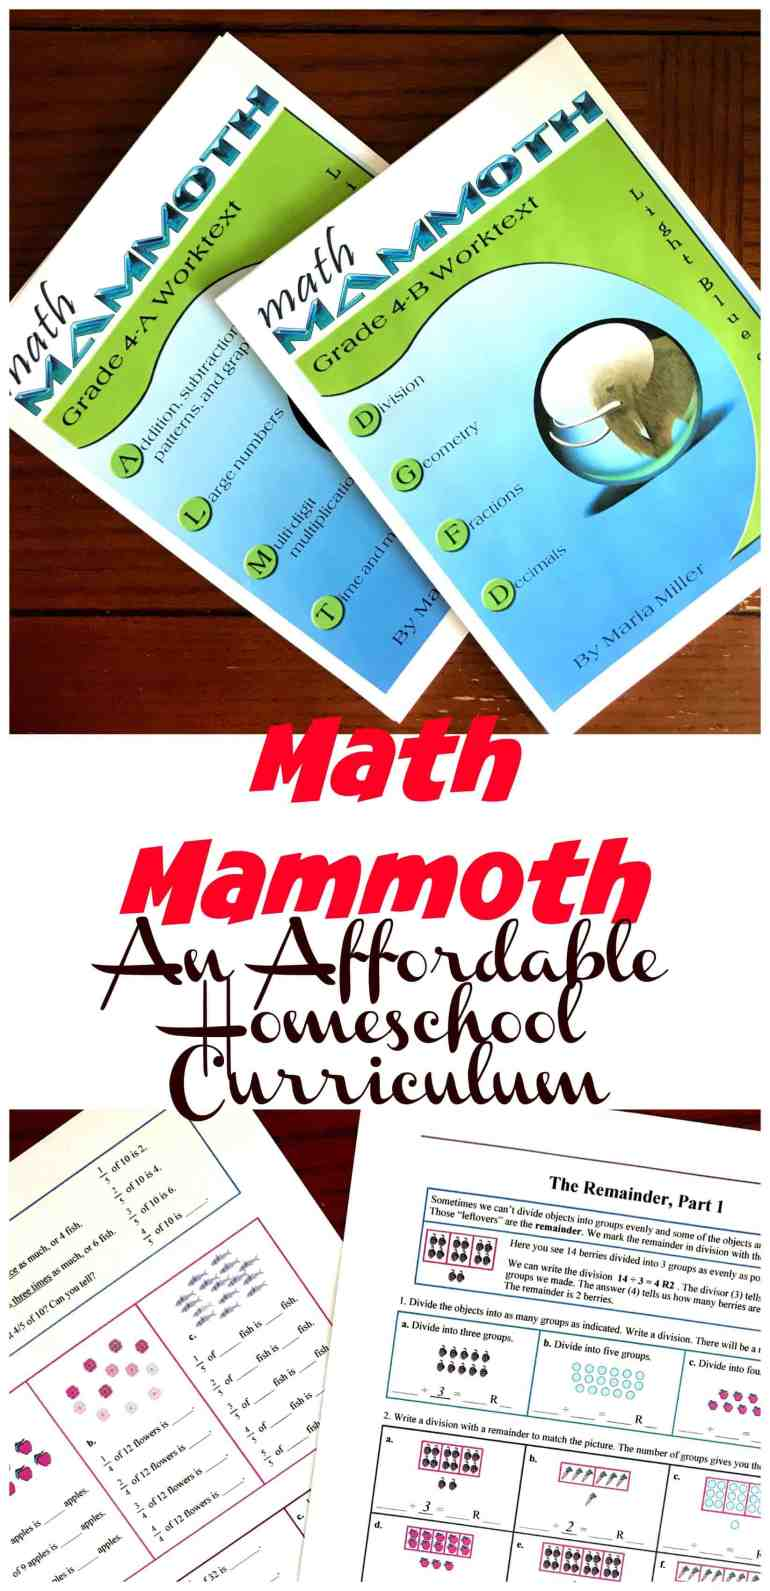 Math Mammoth is an affordable math program that has a wonderful focus on place value. As children work through math problems they learn more about place value through modeling, number lines, and area models.